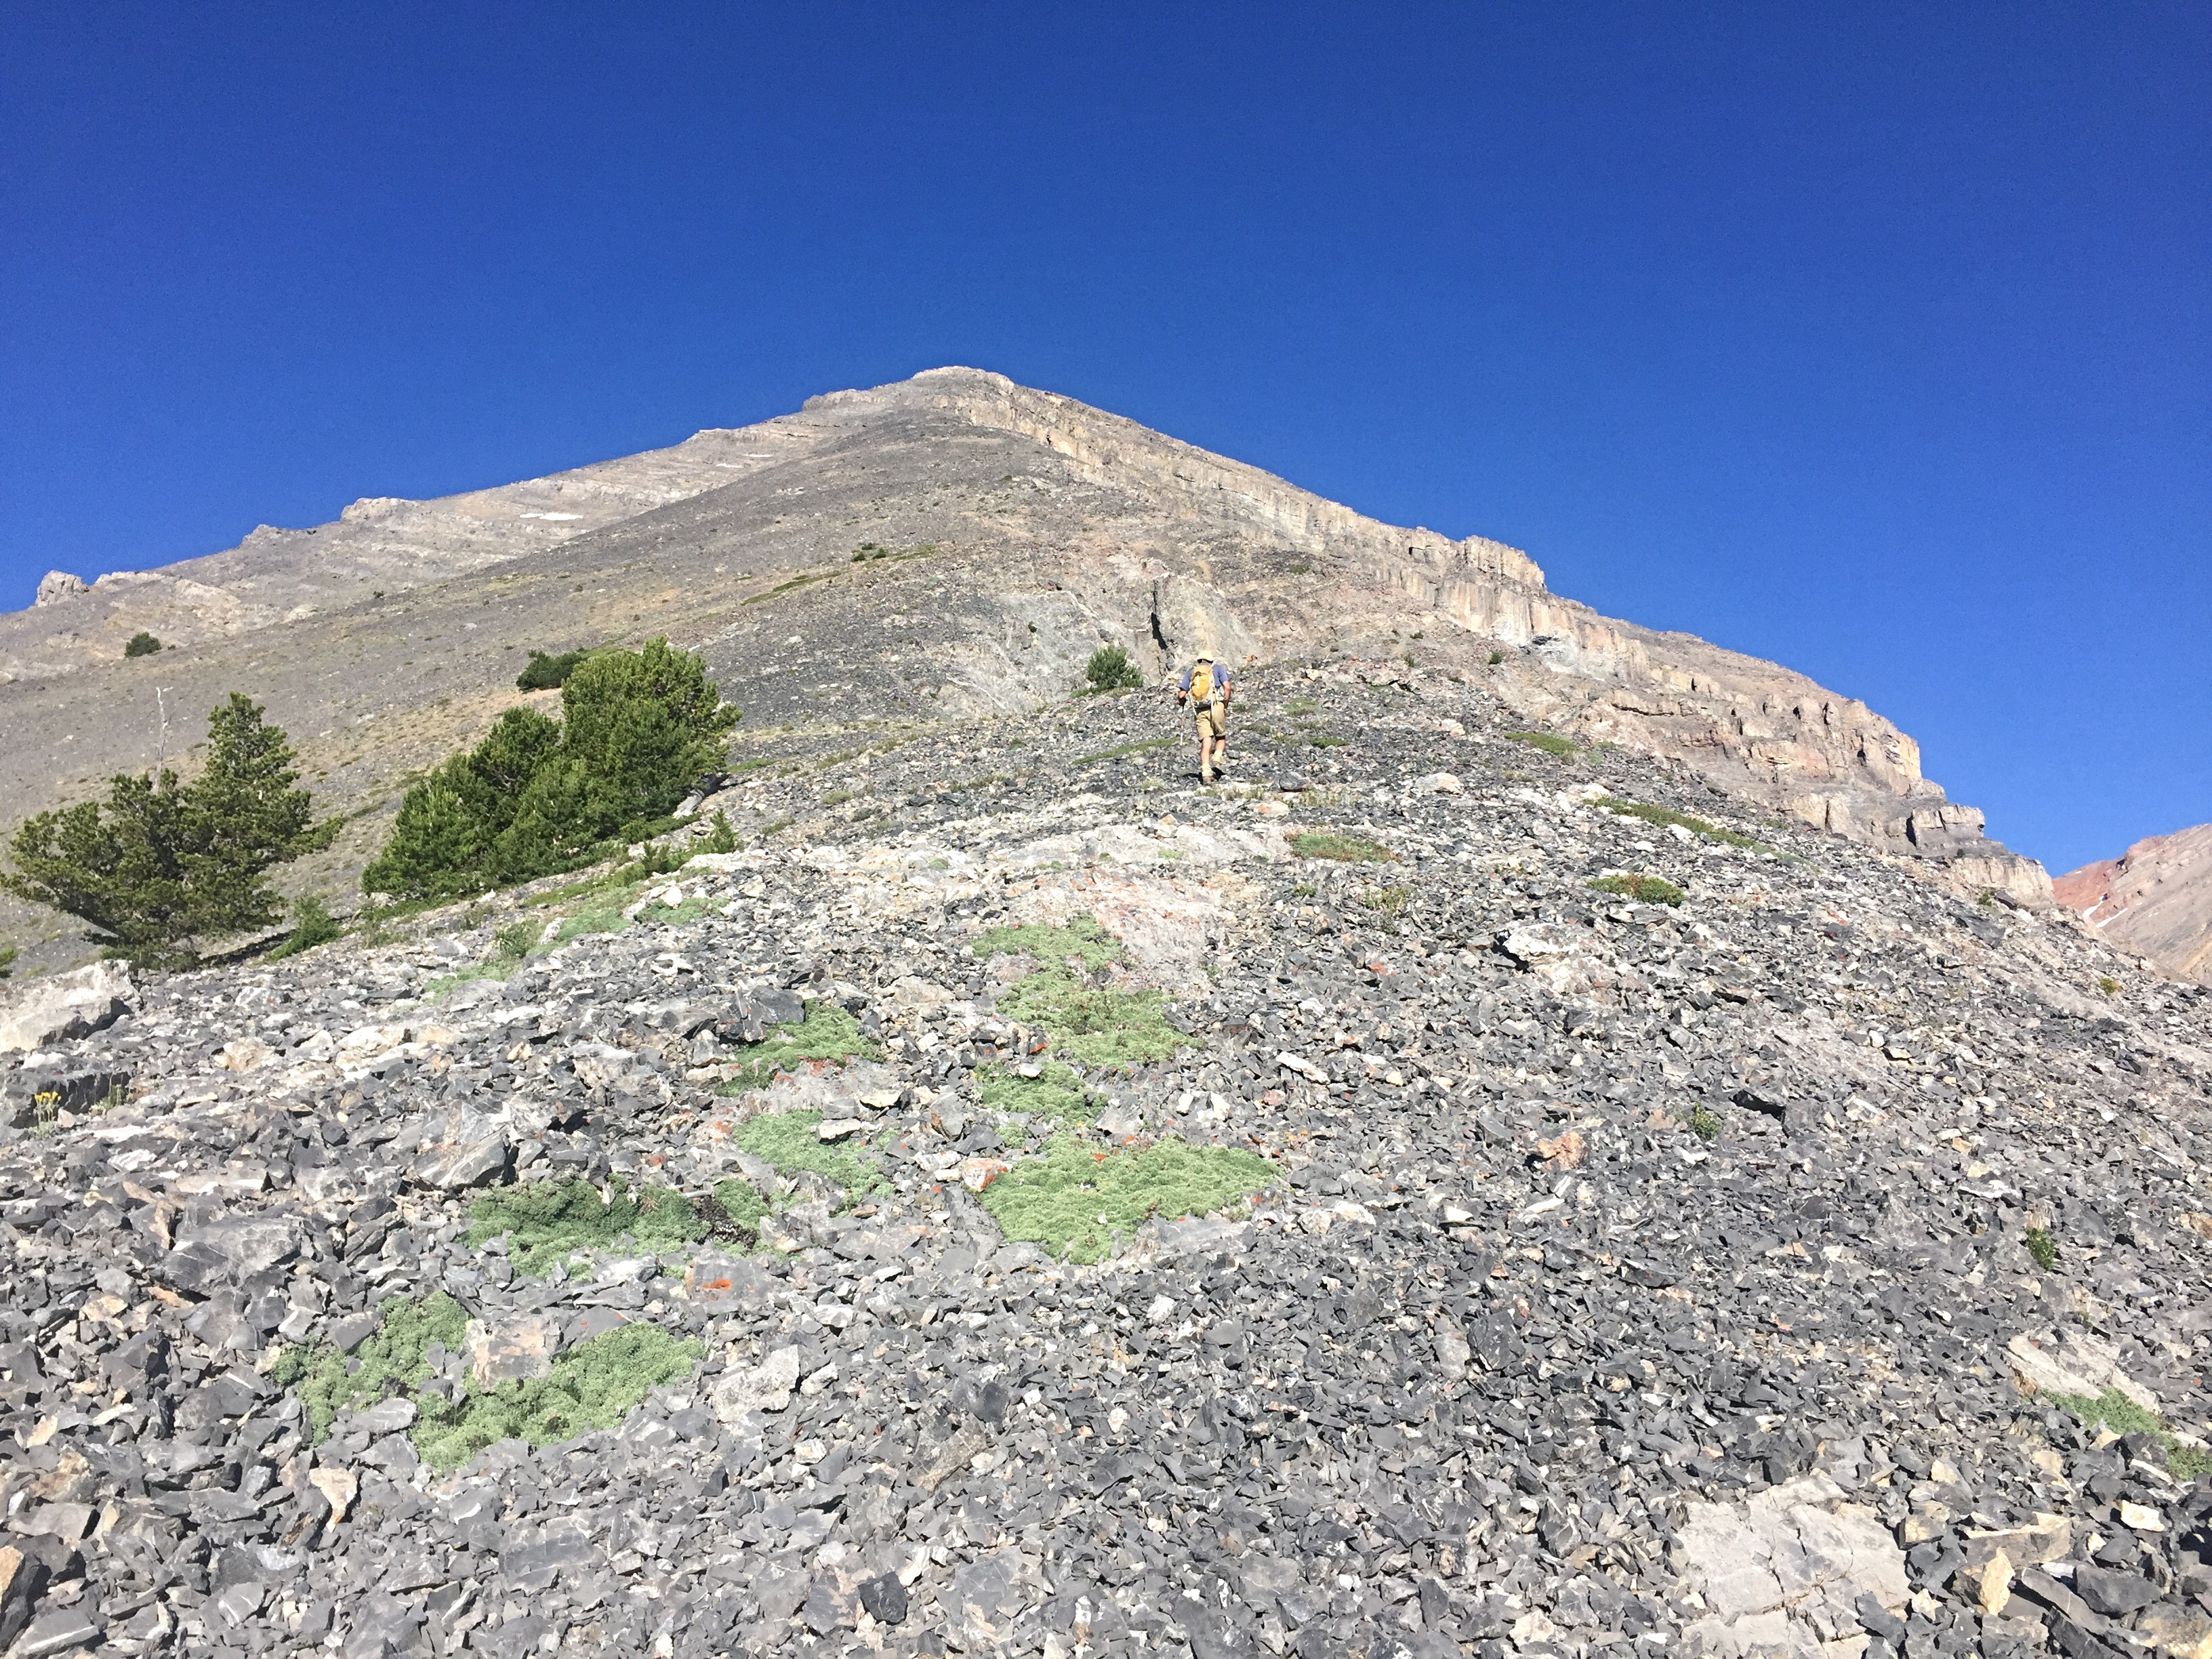 Looking up the east ridge from just above treeline.